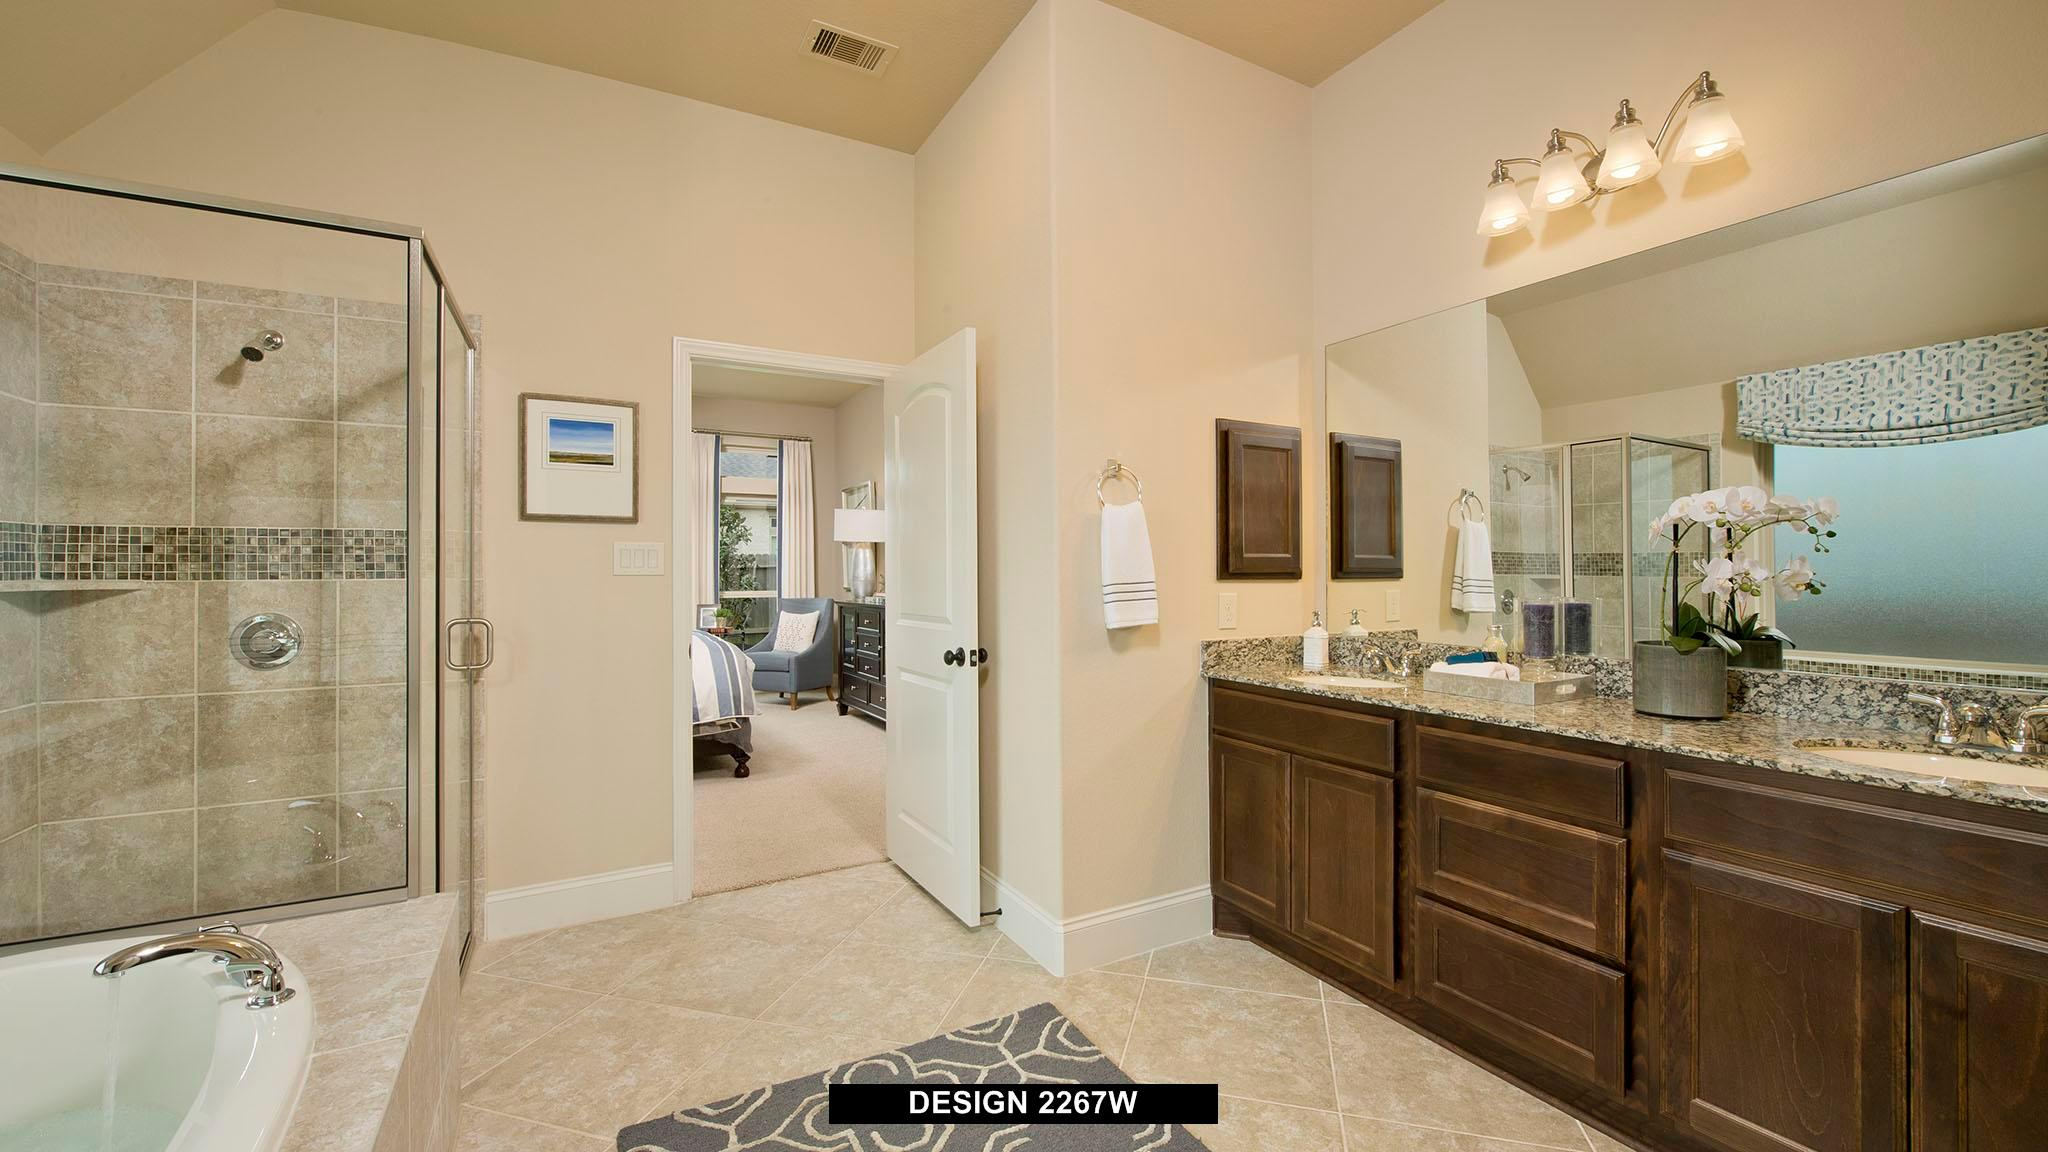 Bathroom featured in the 2267W By Perry Homes in Dallas, TX